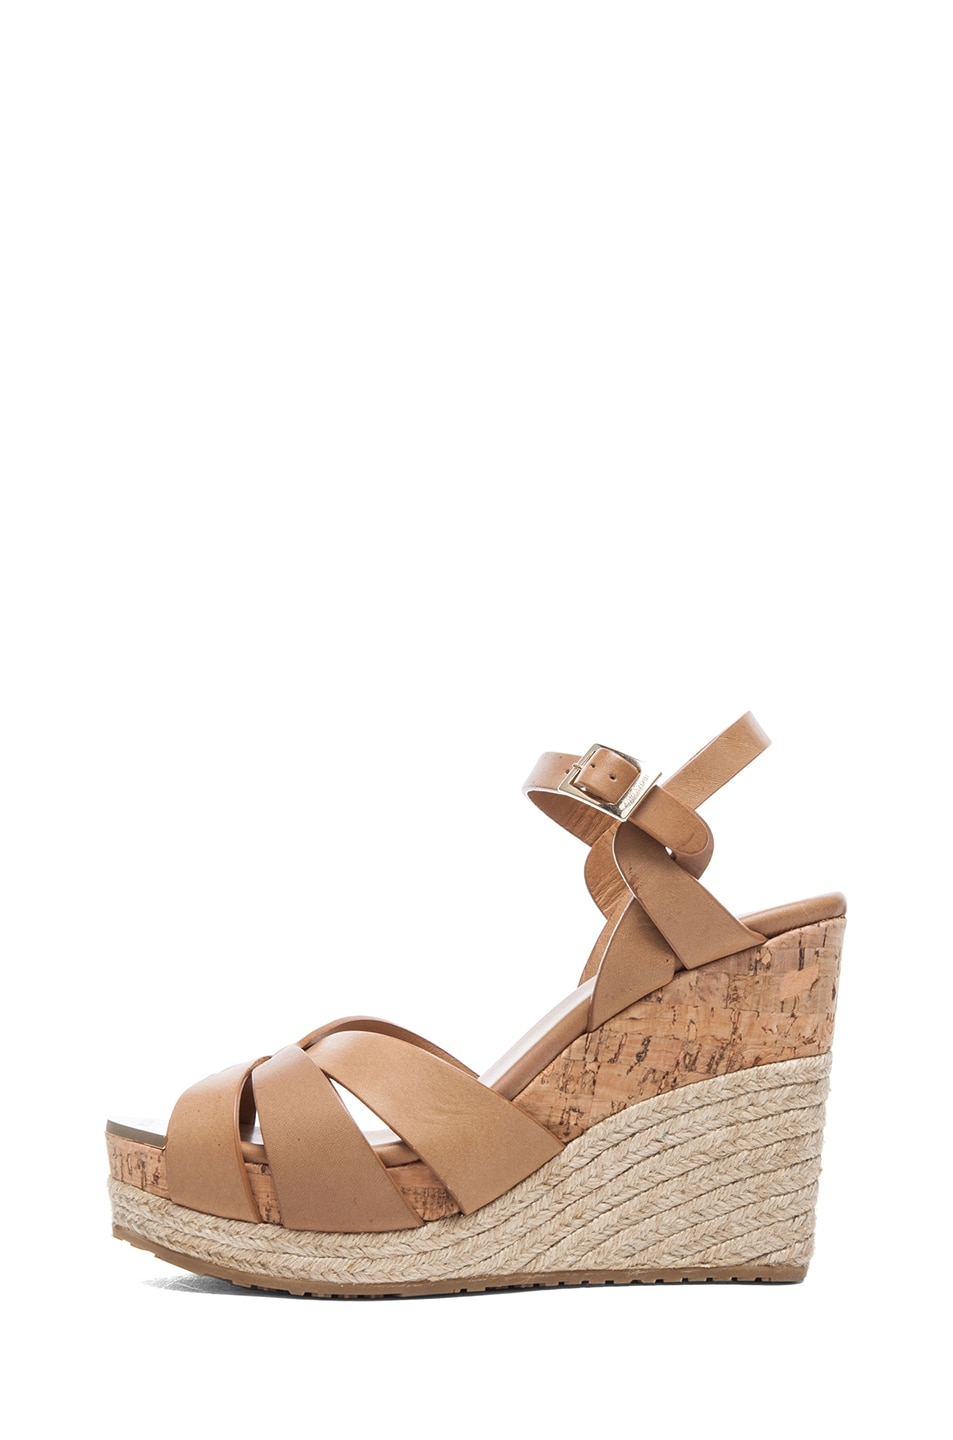 Image 1 of Jimmy Choo Pallet Espadrilles in Cuoio